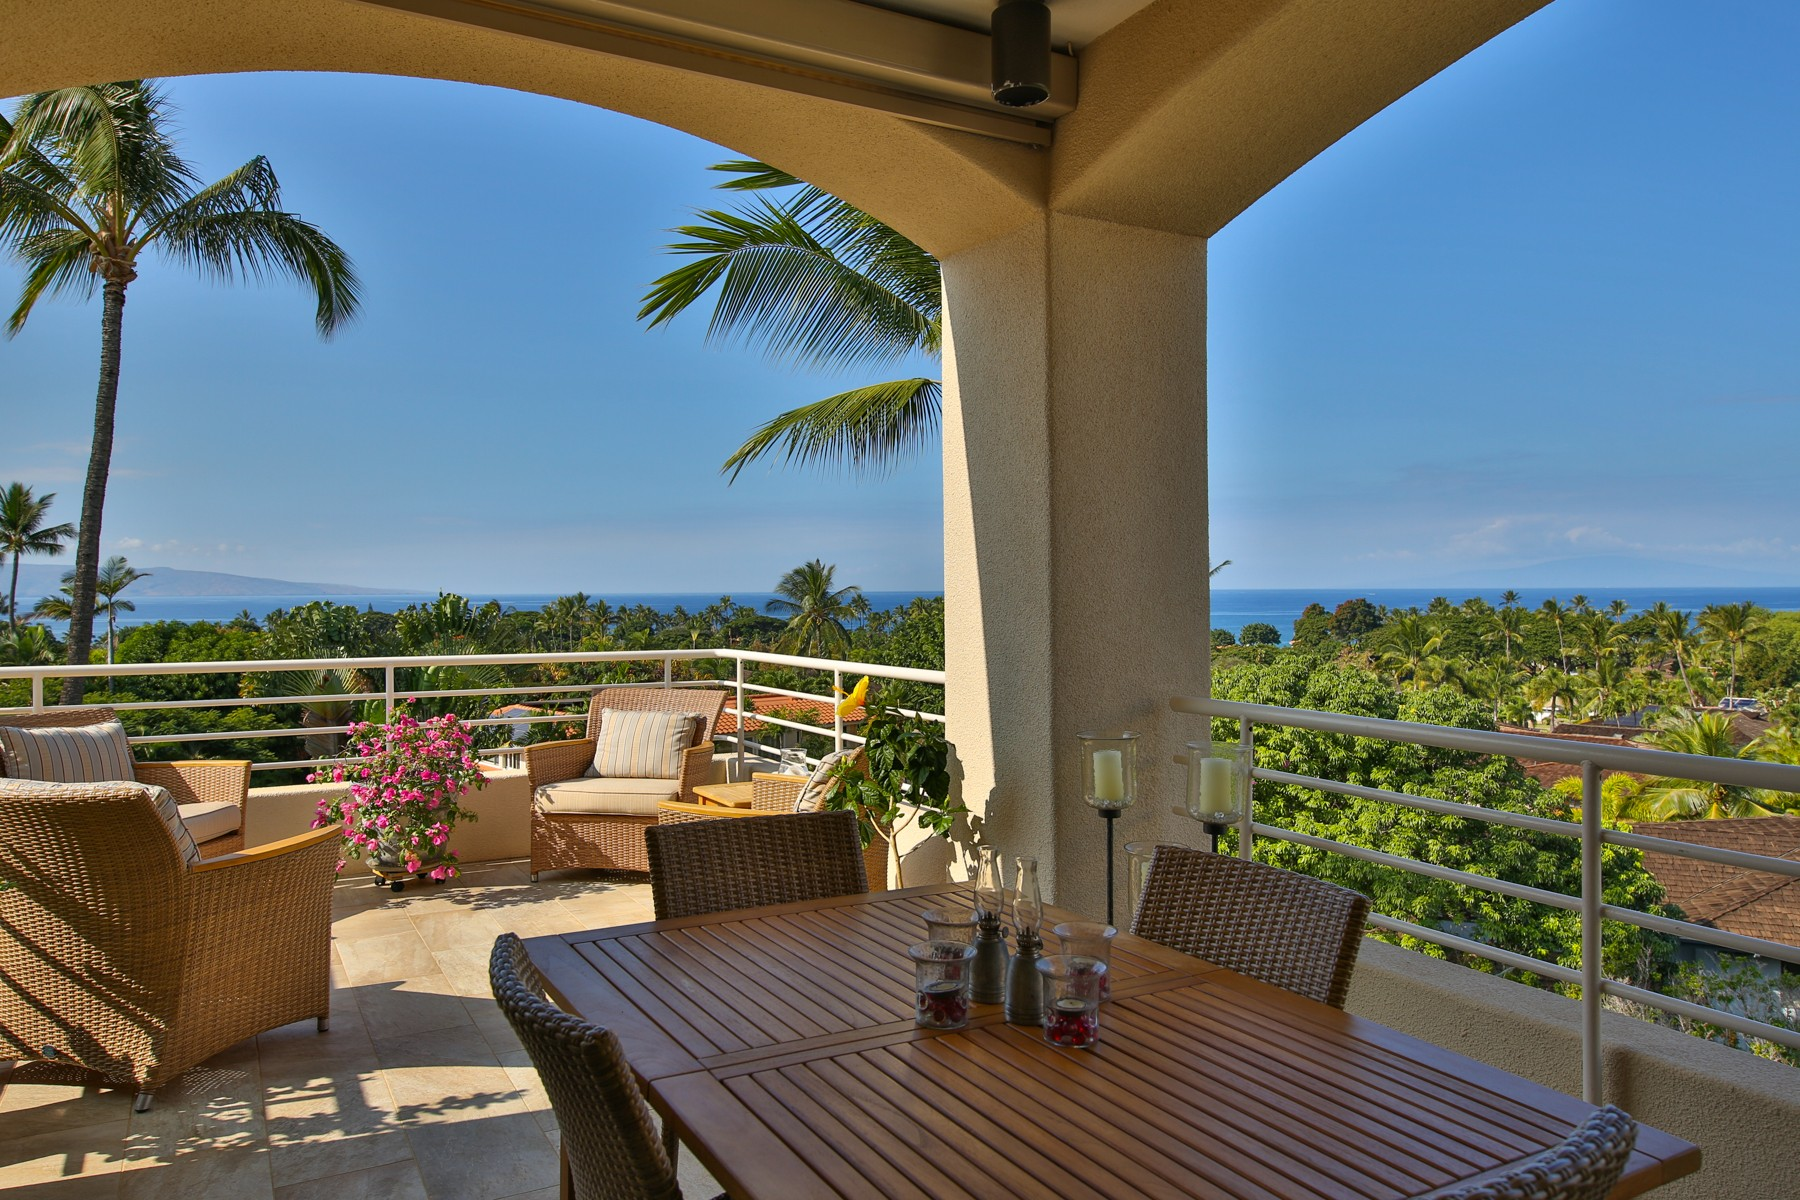 Appartement en copropriété pour l Vente à Intriguing Ocean & Sunset Views All-Year-round 3150 Wailea Alanui Drive, Wailea Palms 3504 Wailea, Hawaii, 96753 États-Unis